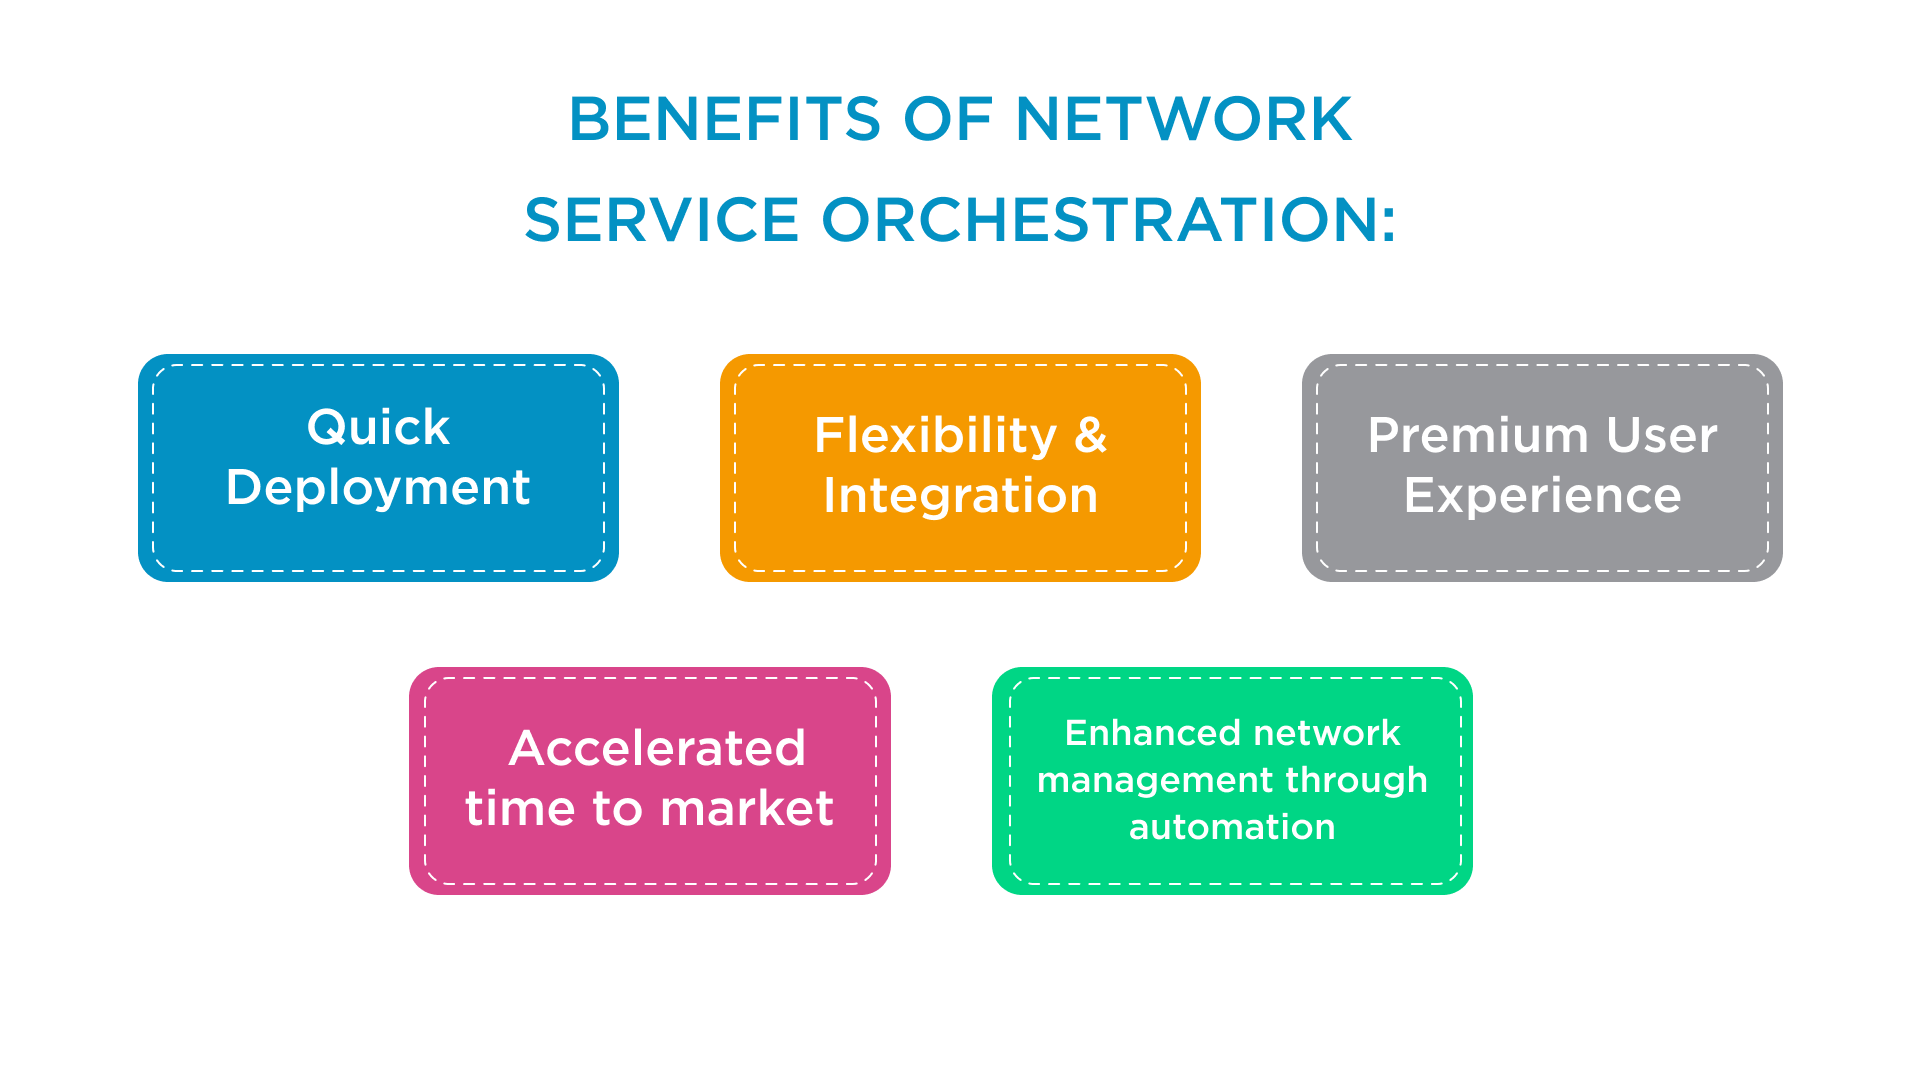 Benefits of network orchestration